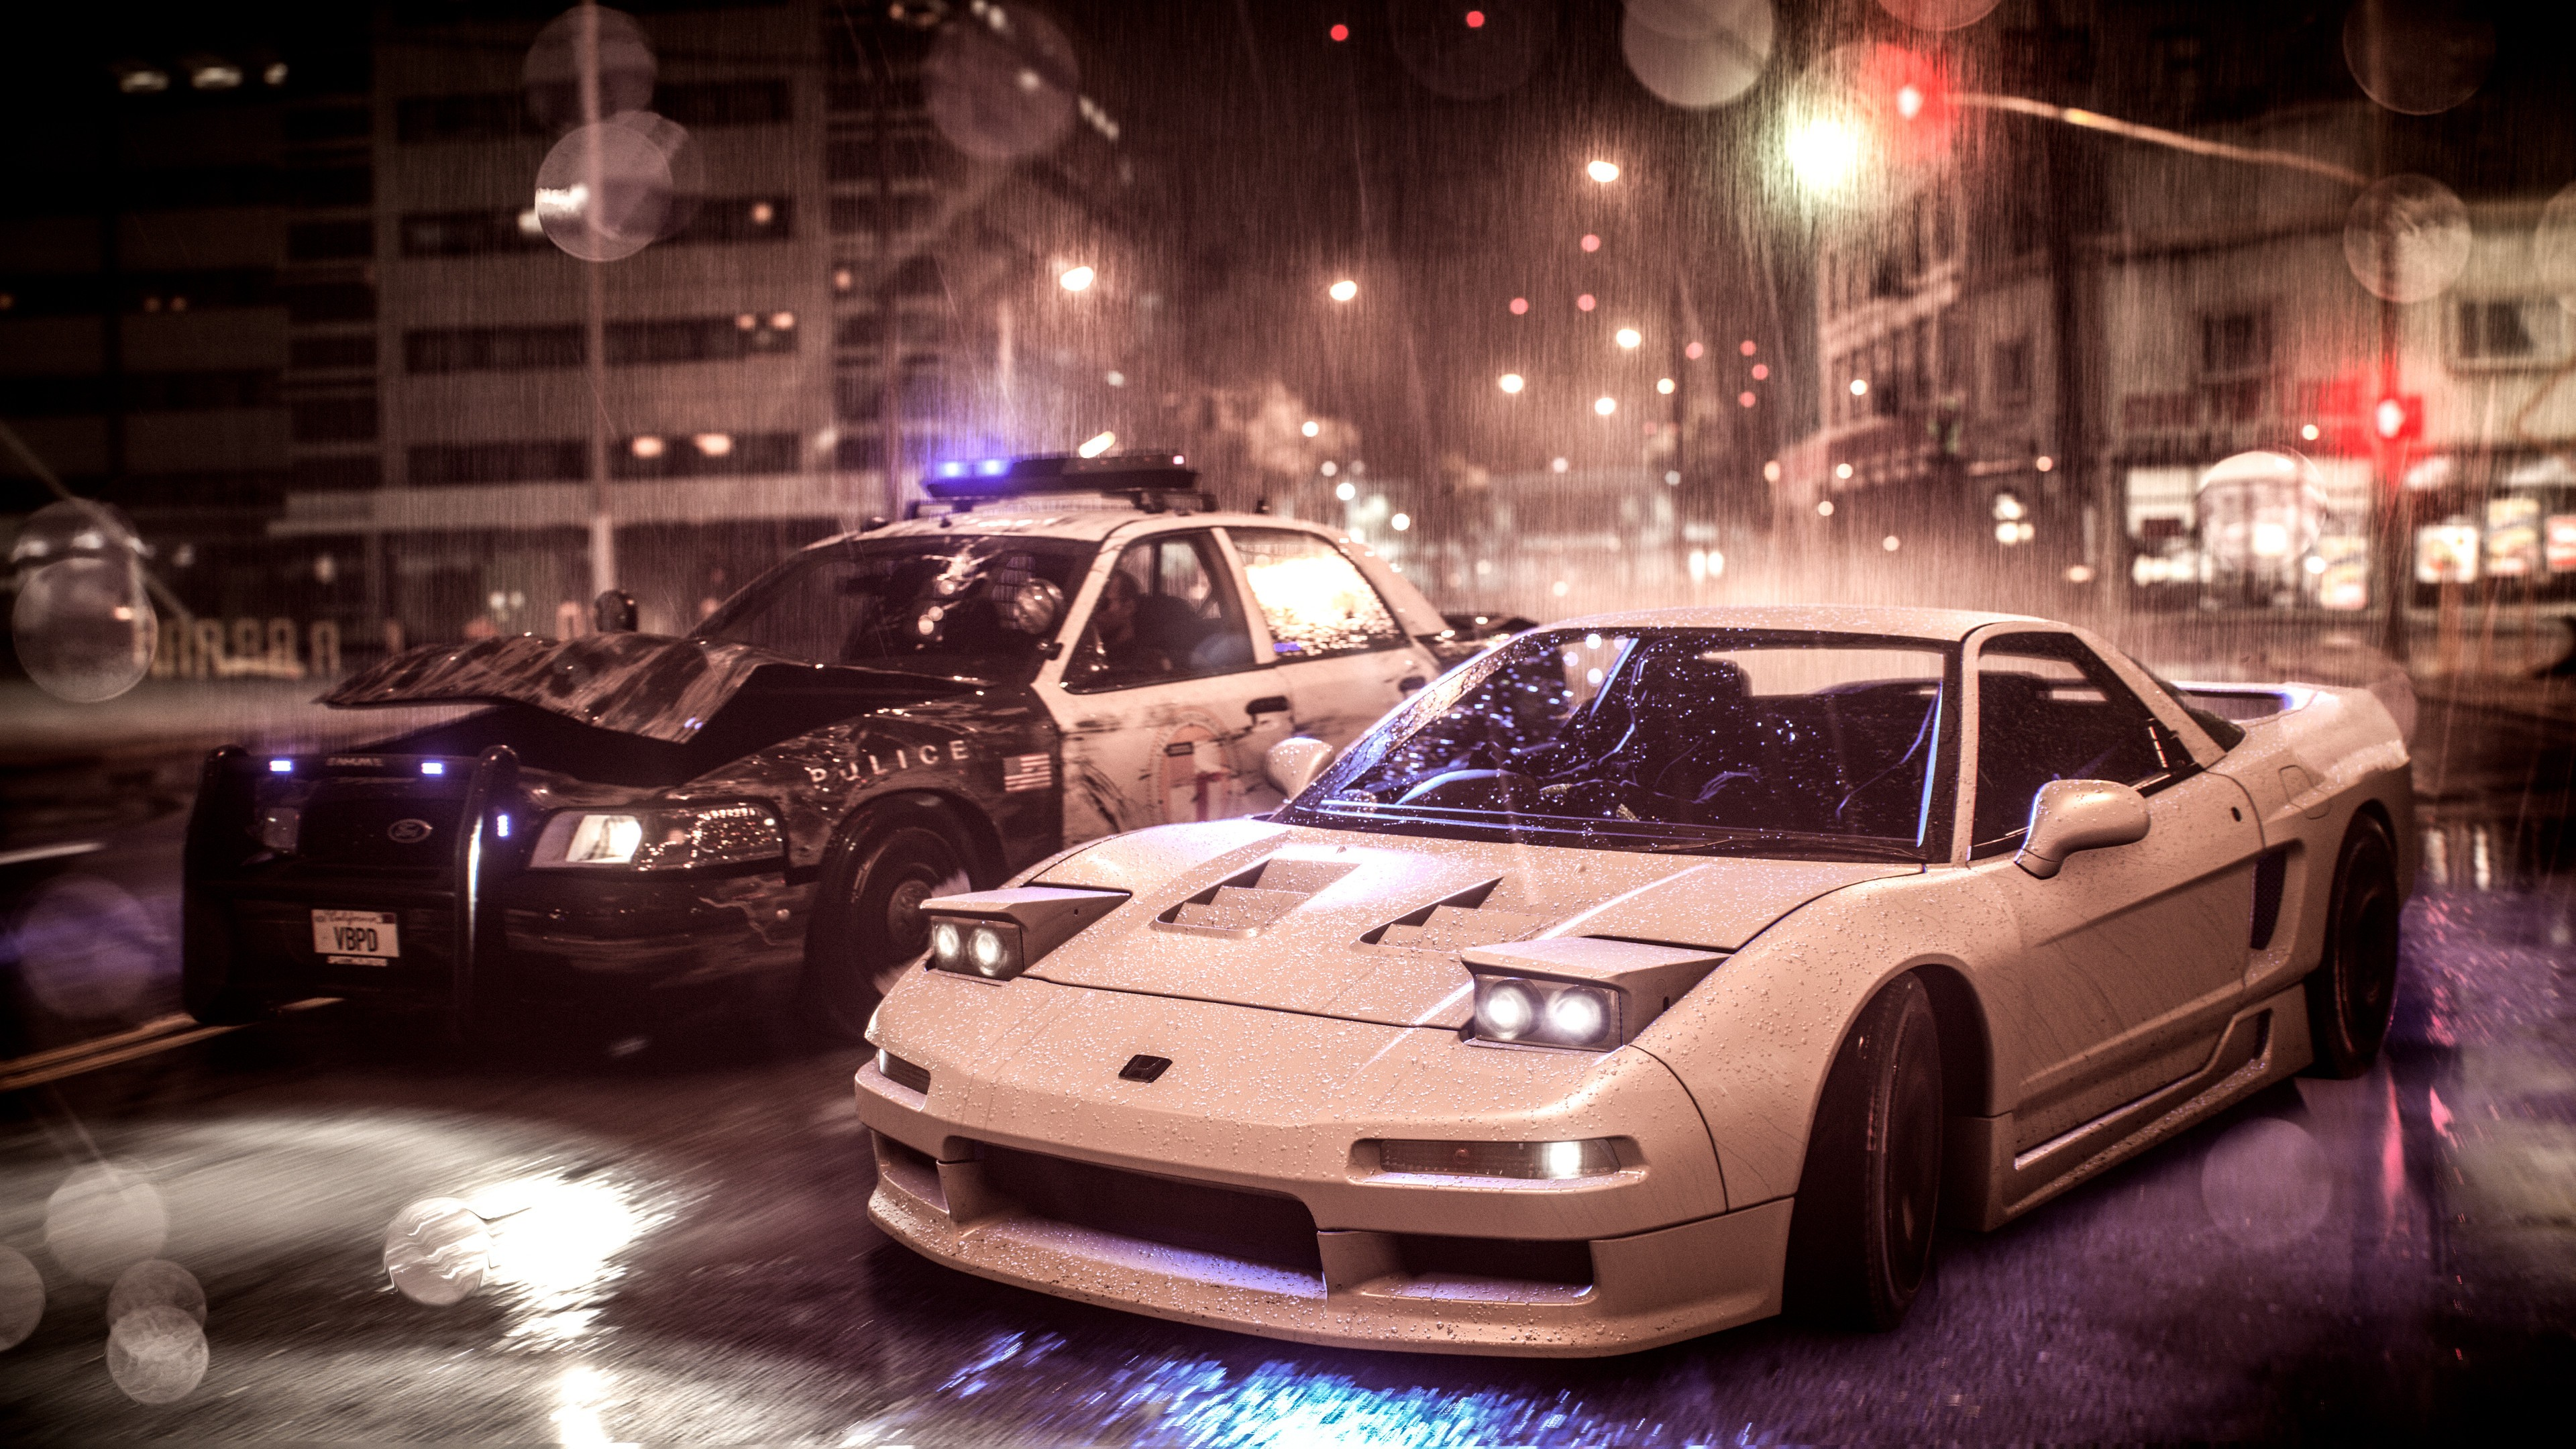 Need For Speed Acura Nsx Vs Police Car 4k, HD Games, 4k